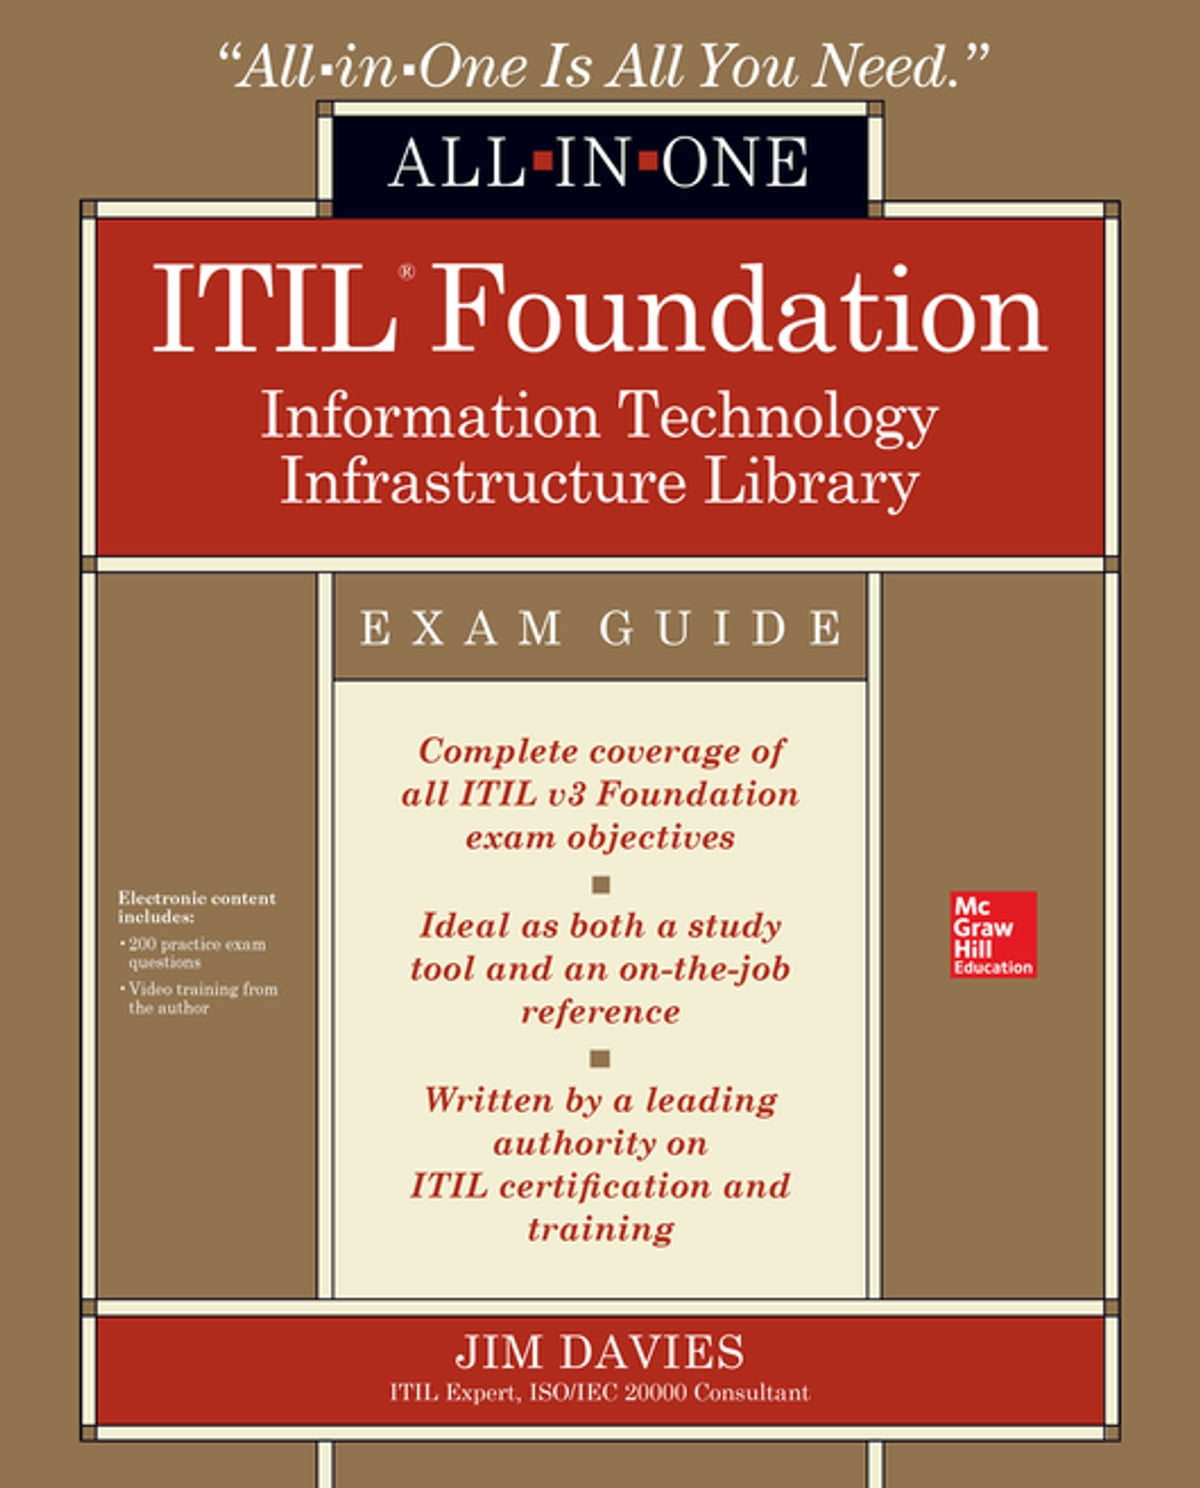 Itil Foundation All In One Exam Guide Ebook By Jim Davies